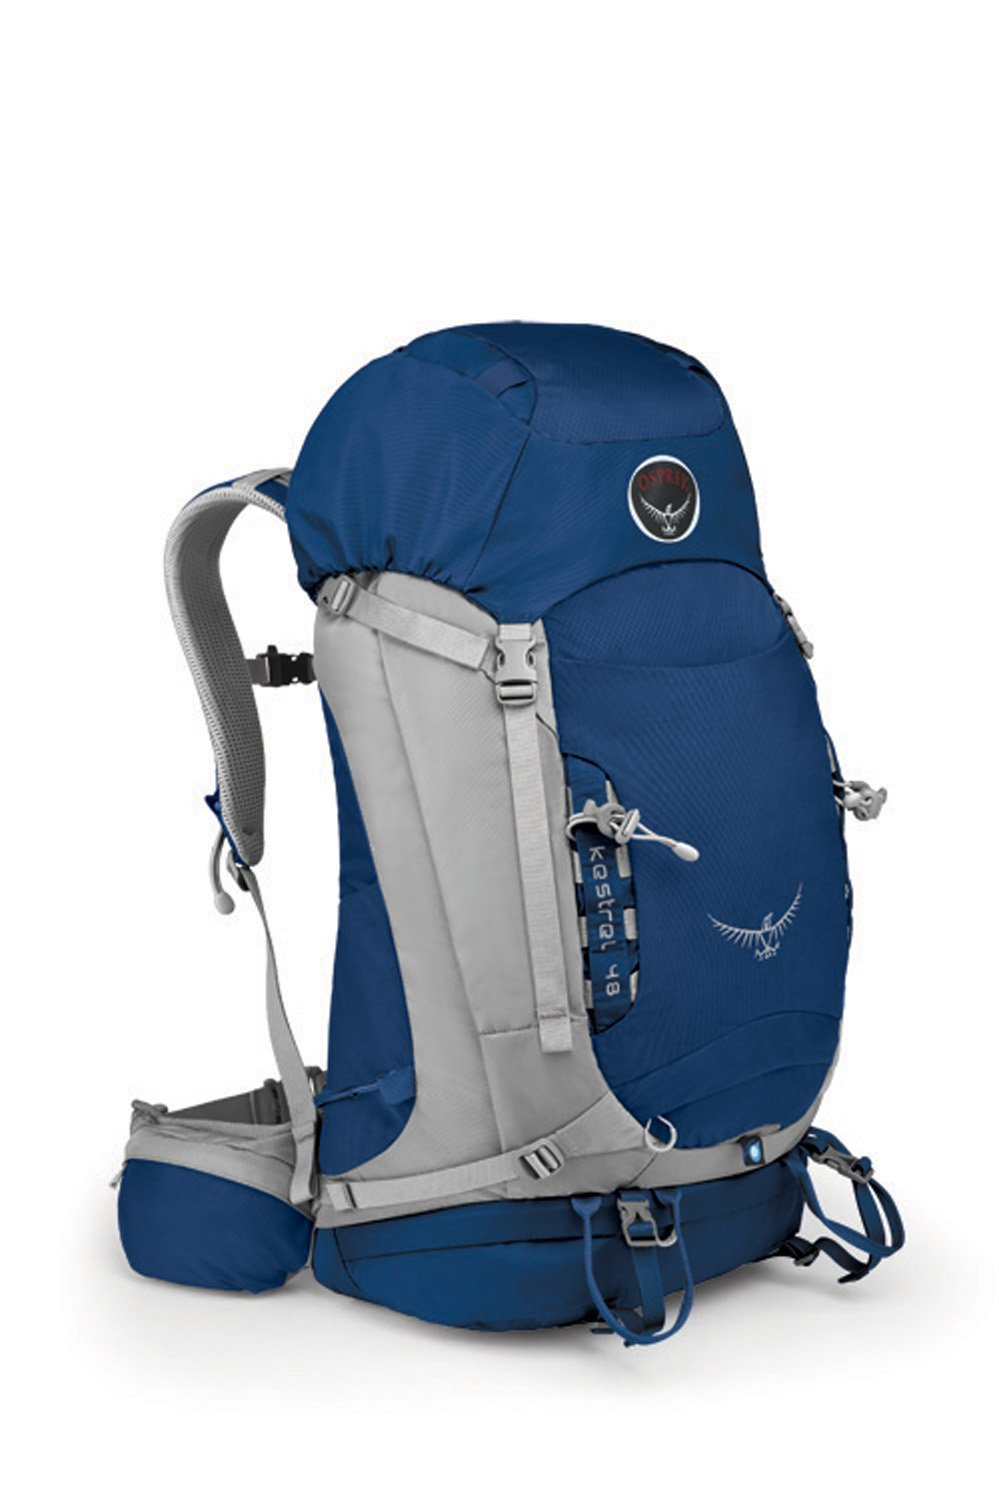 best osprey backpacking pack